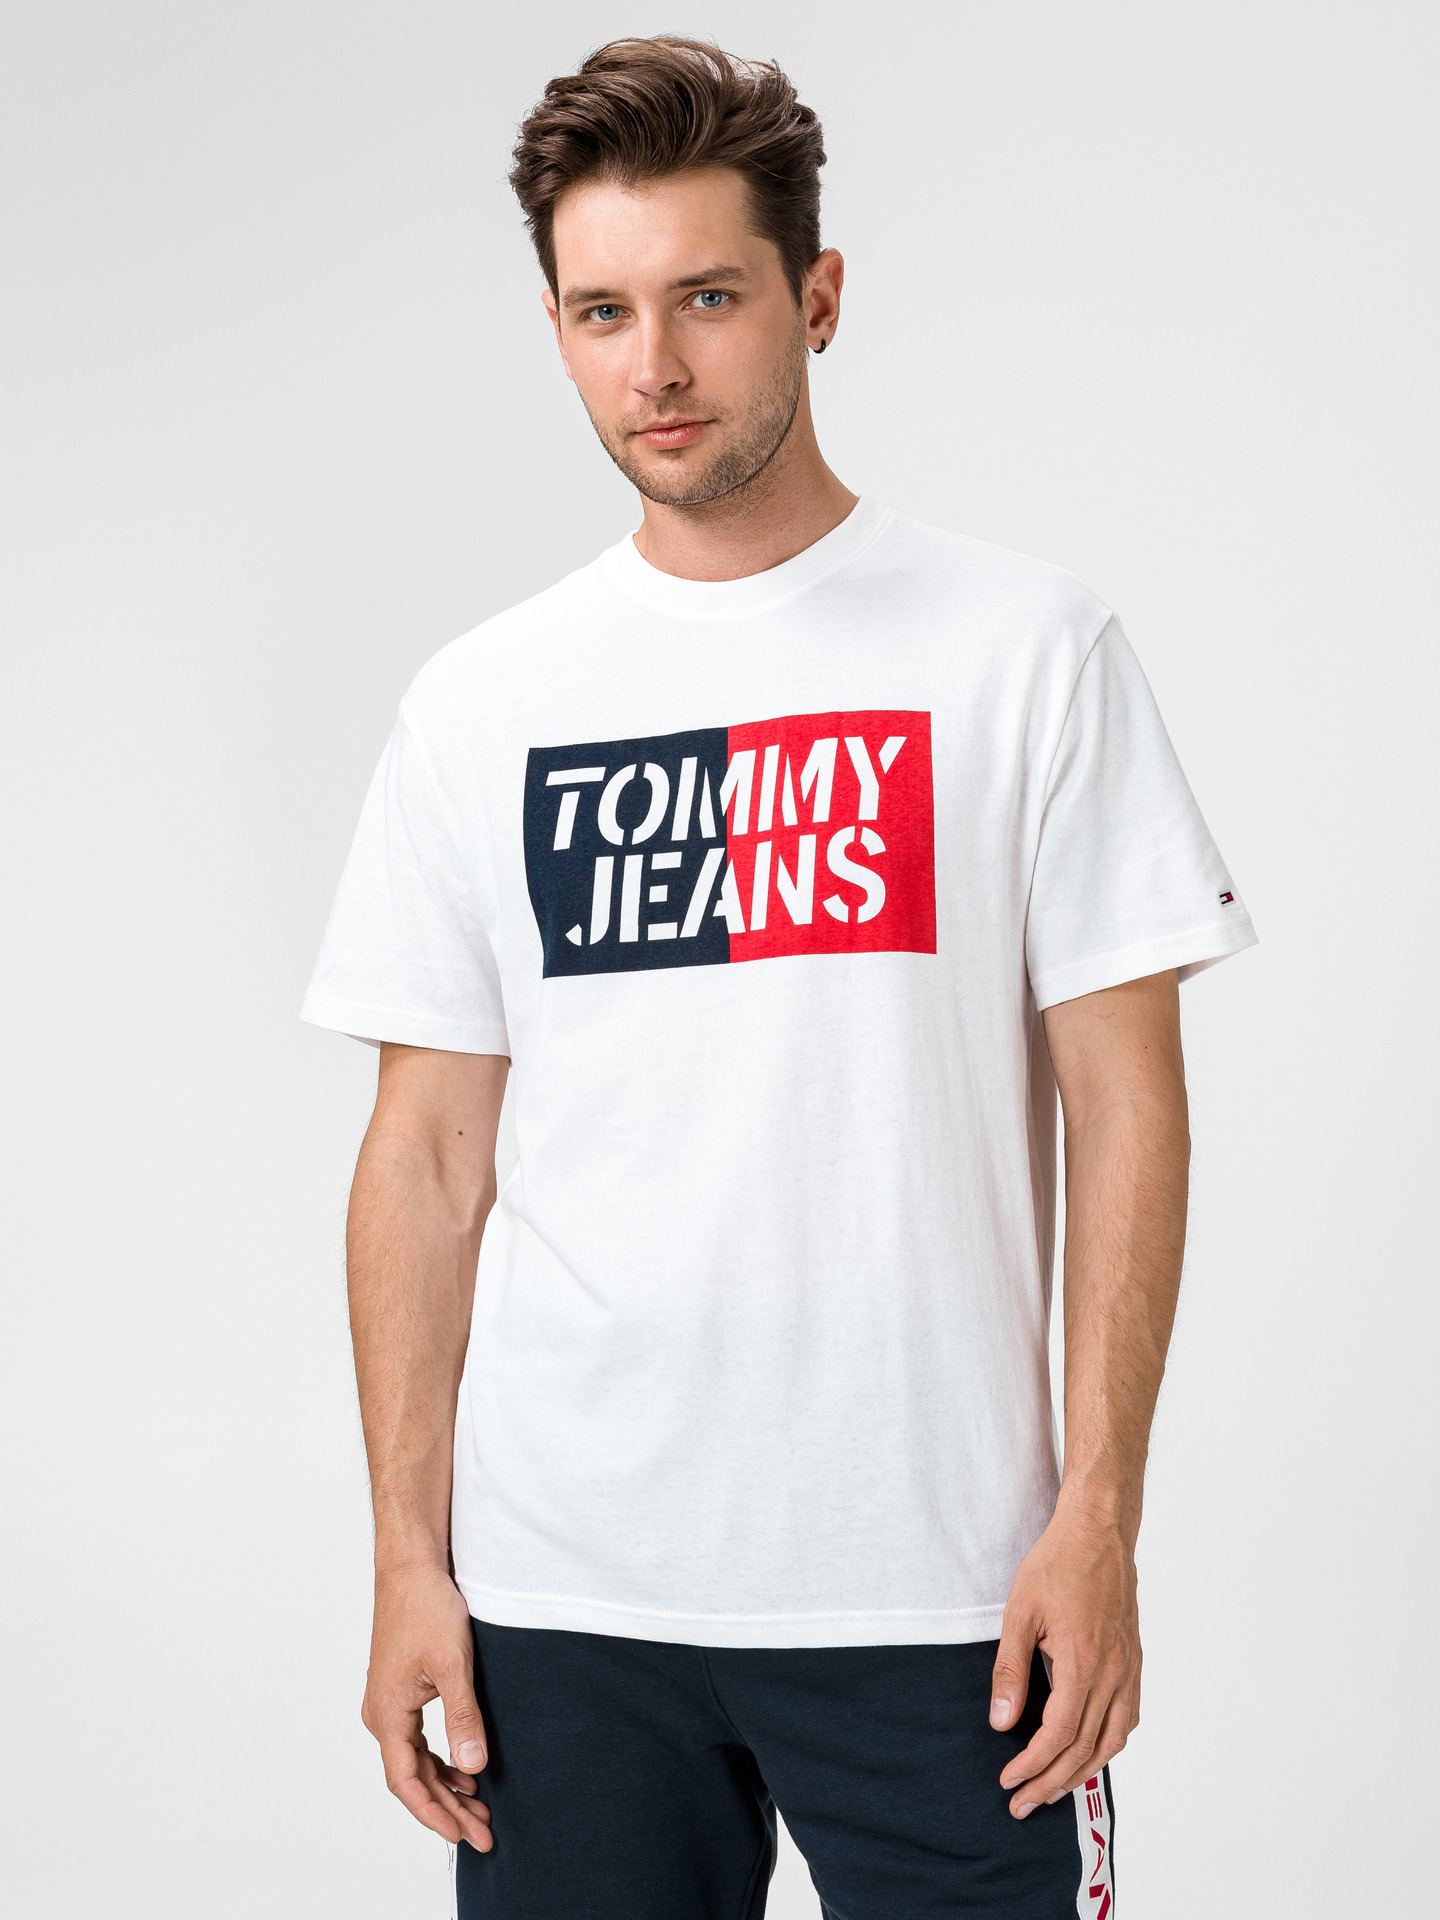 Triko Tommy Jeans (1)